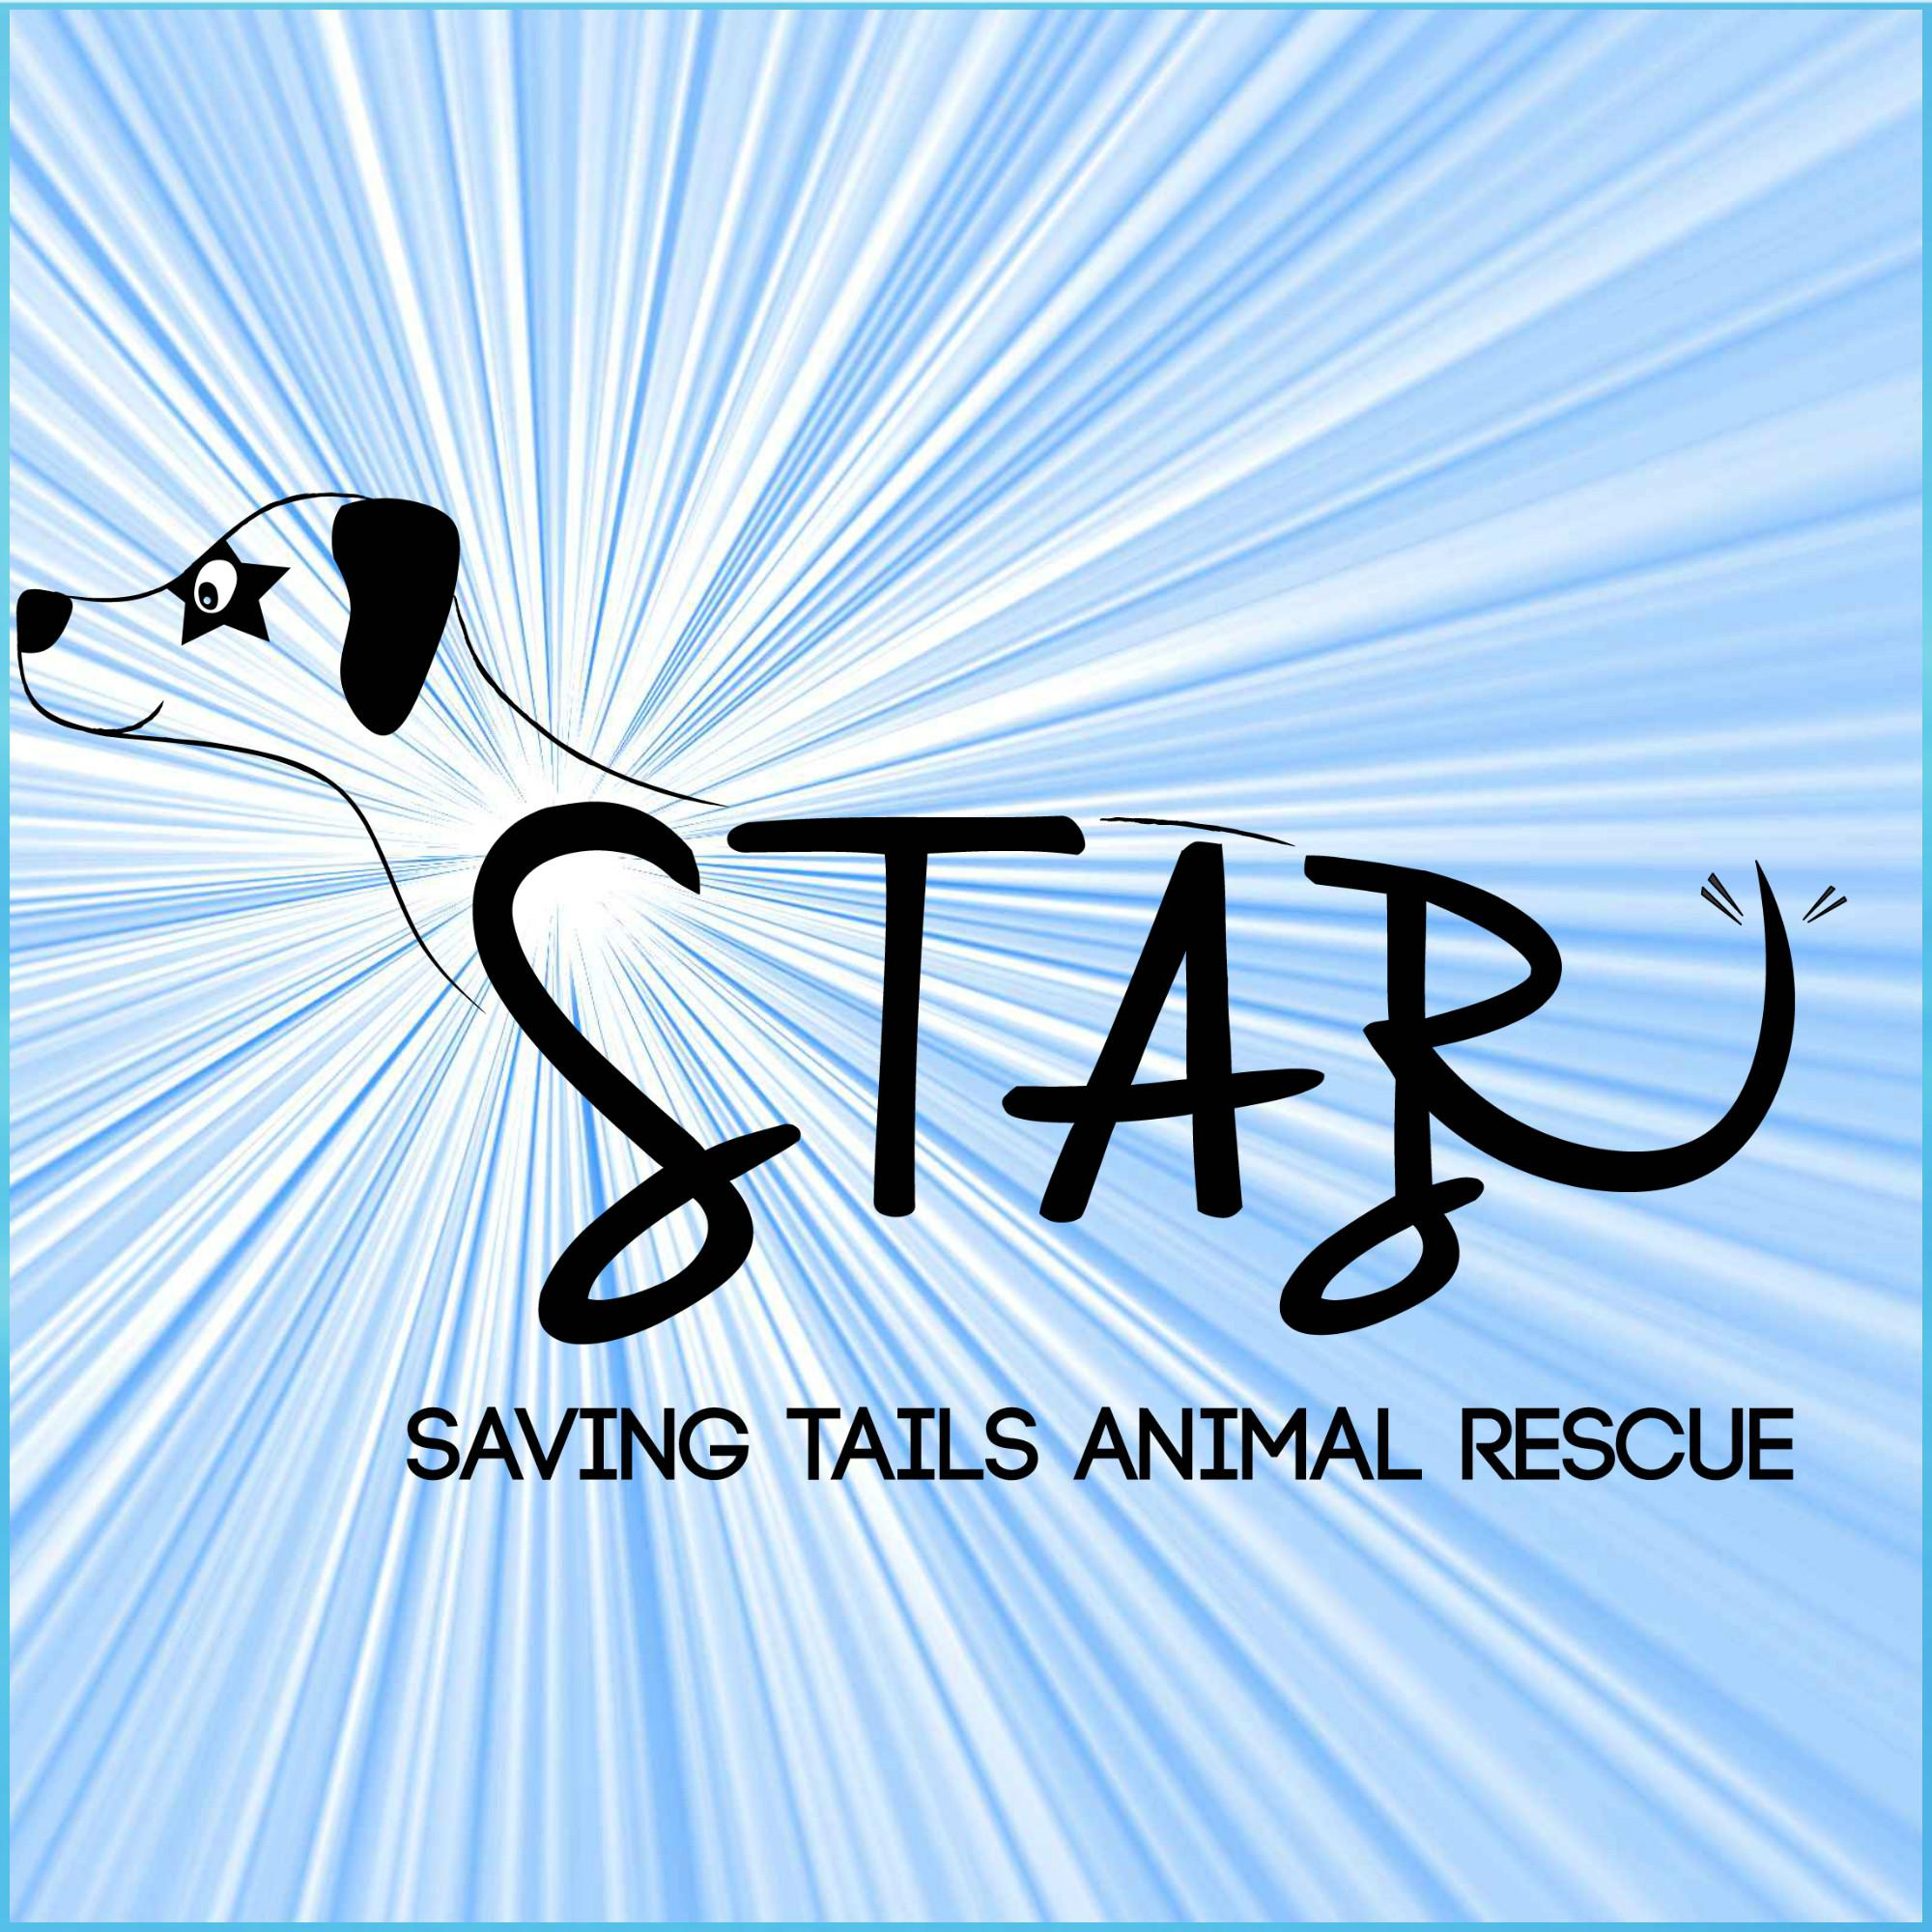 Saving Tails Animal Rescue (STAR)